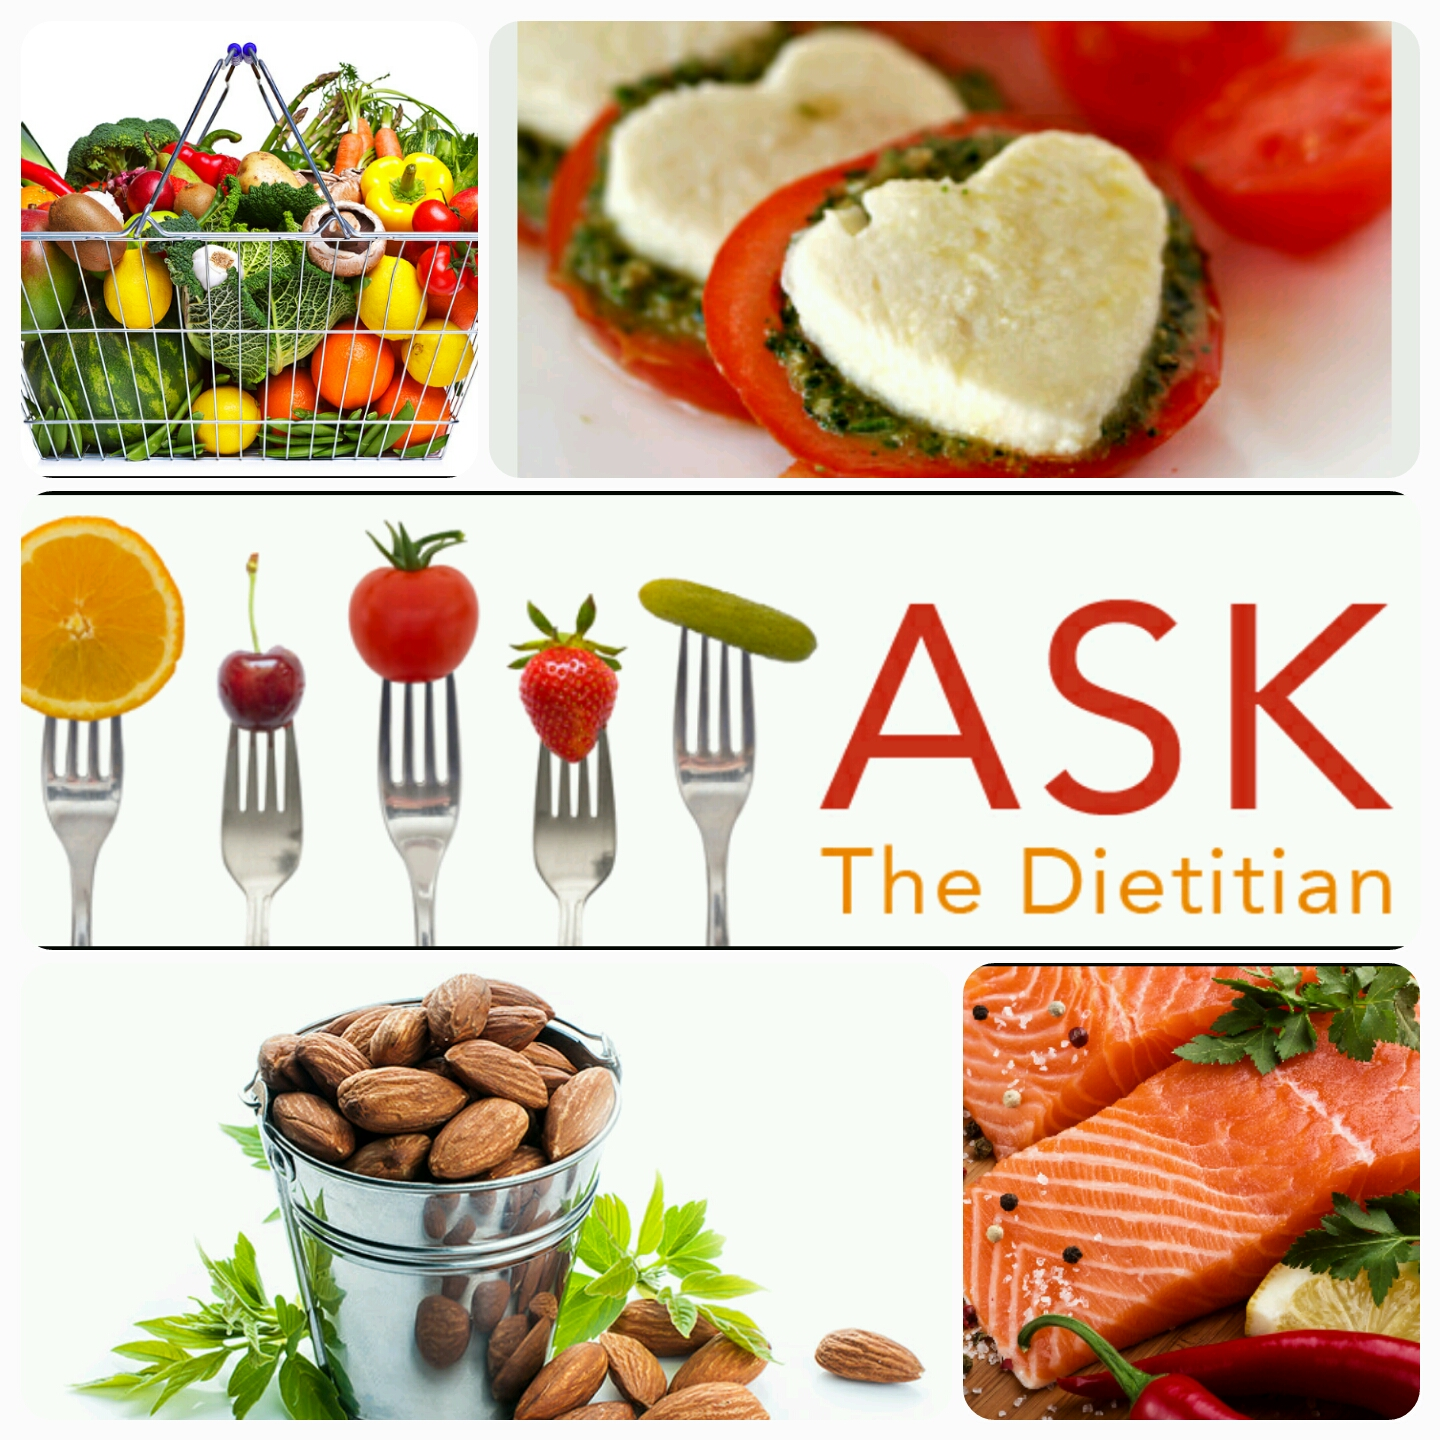 What The Heck is a Dietitian???